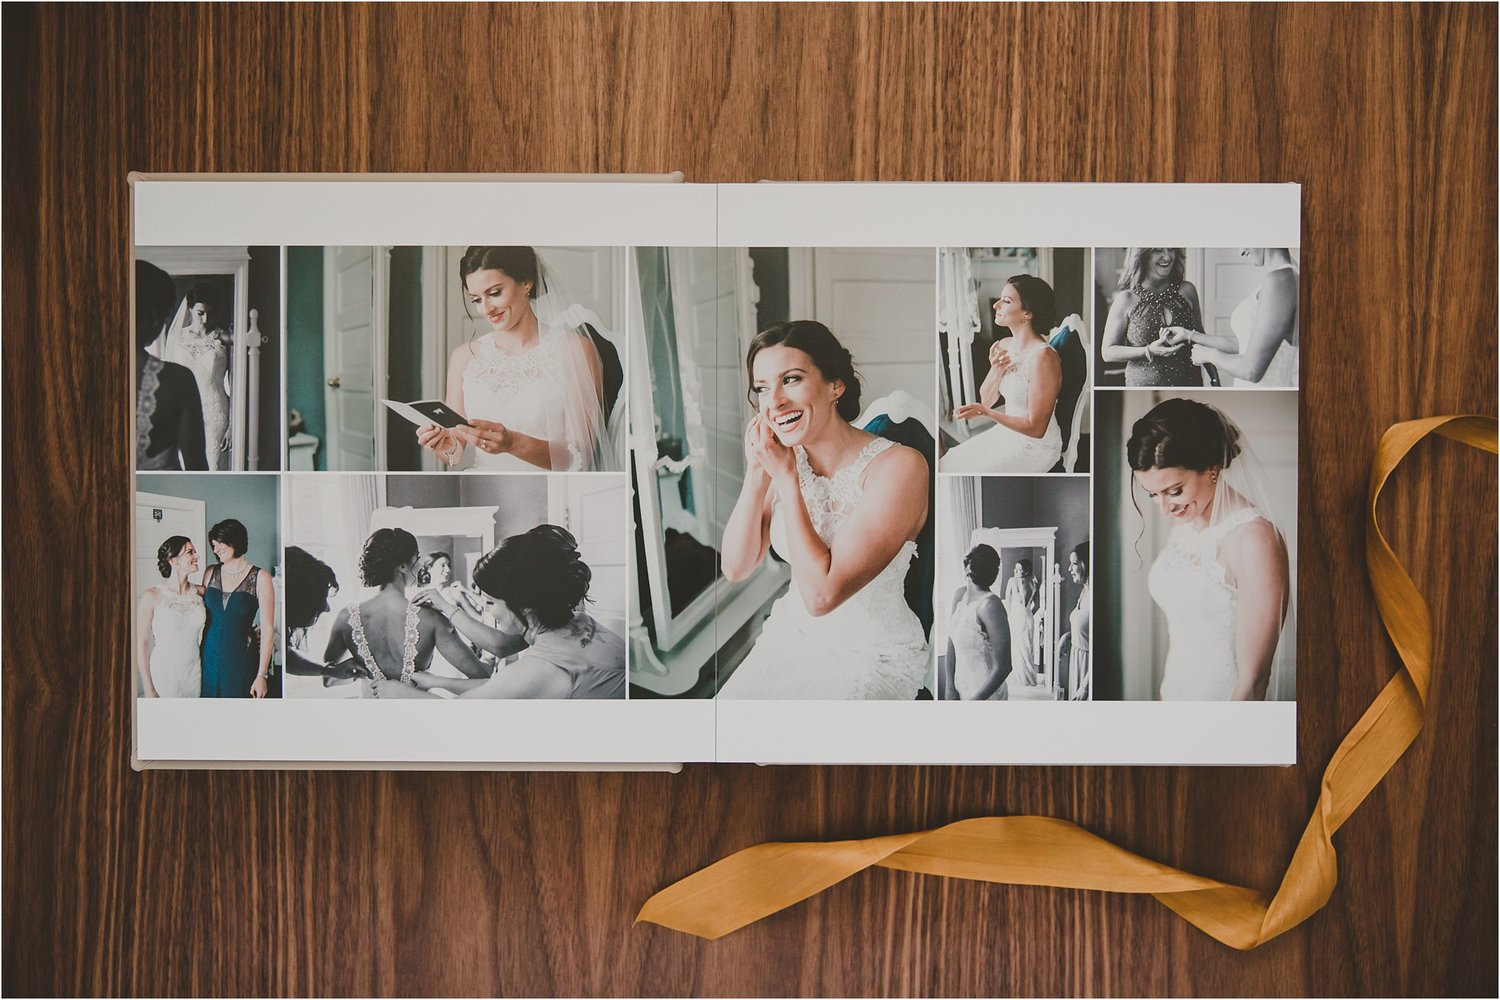 Heirloom products alyssa taylors custom wedding album heirloom products alyssa taylors custom wedding album richmond virginia photographer jeuxipadfo Gallery